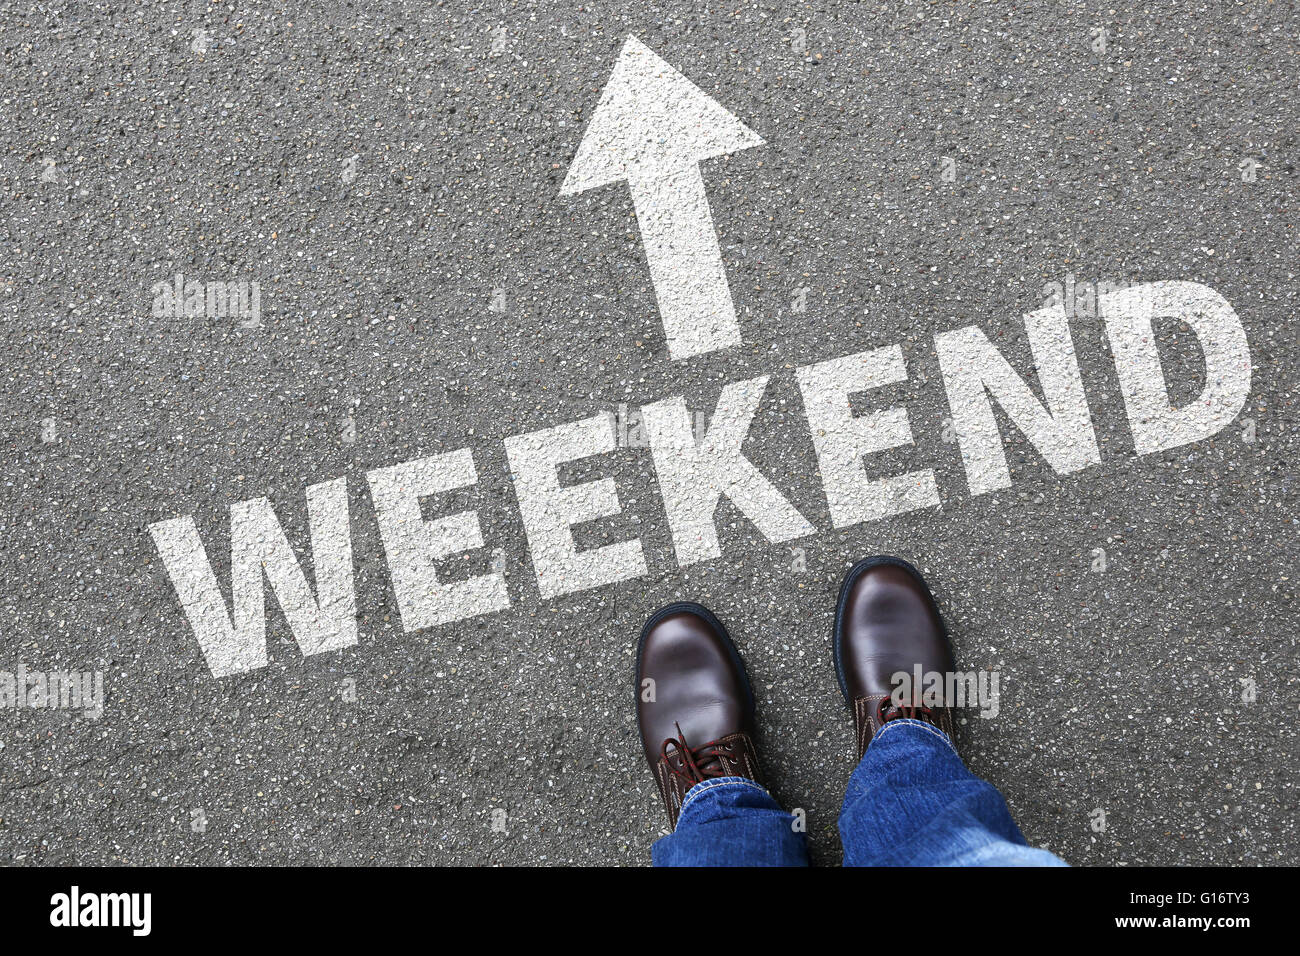 Weekend relax relaxed break people business concept free time leisure - Stock Image